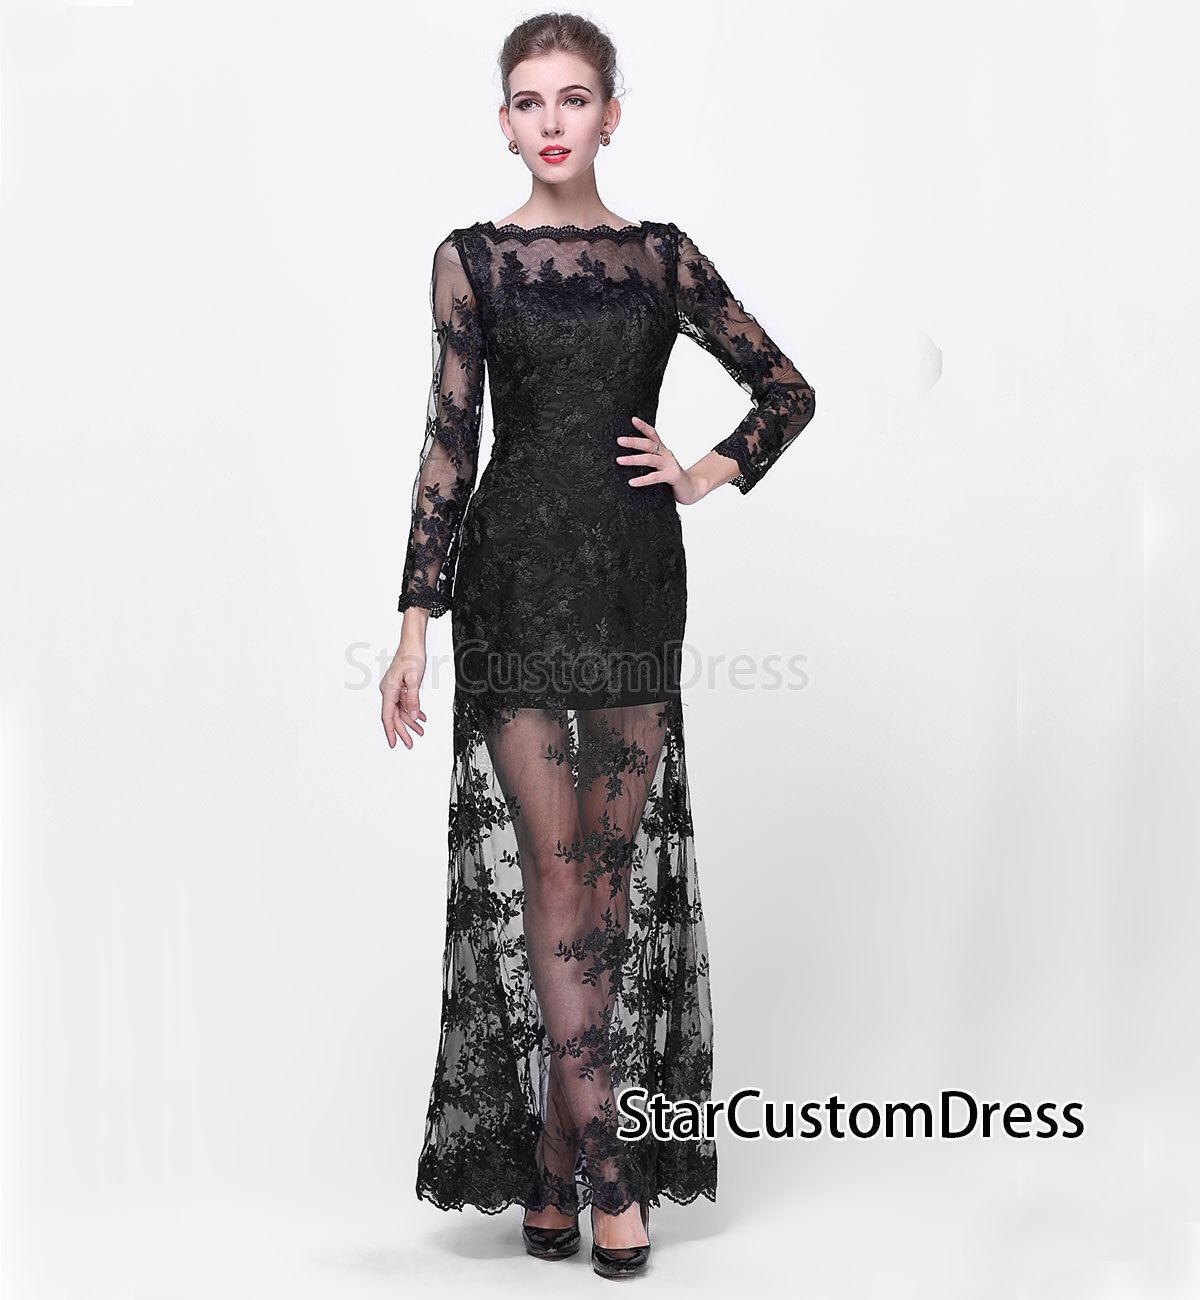 Lace bridesmaid dress long black prom dress lace open v back long